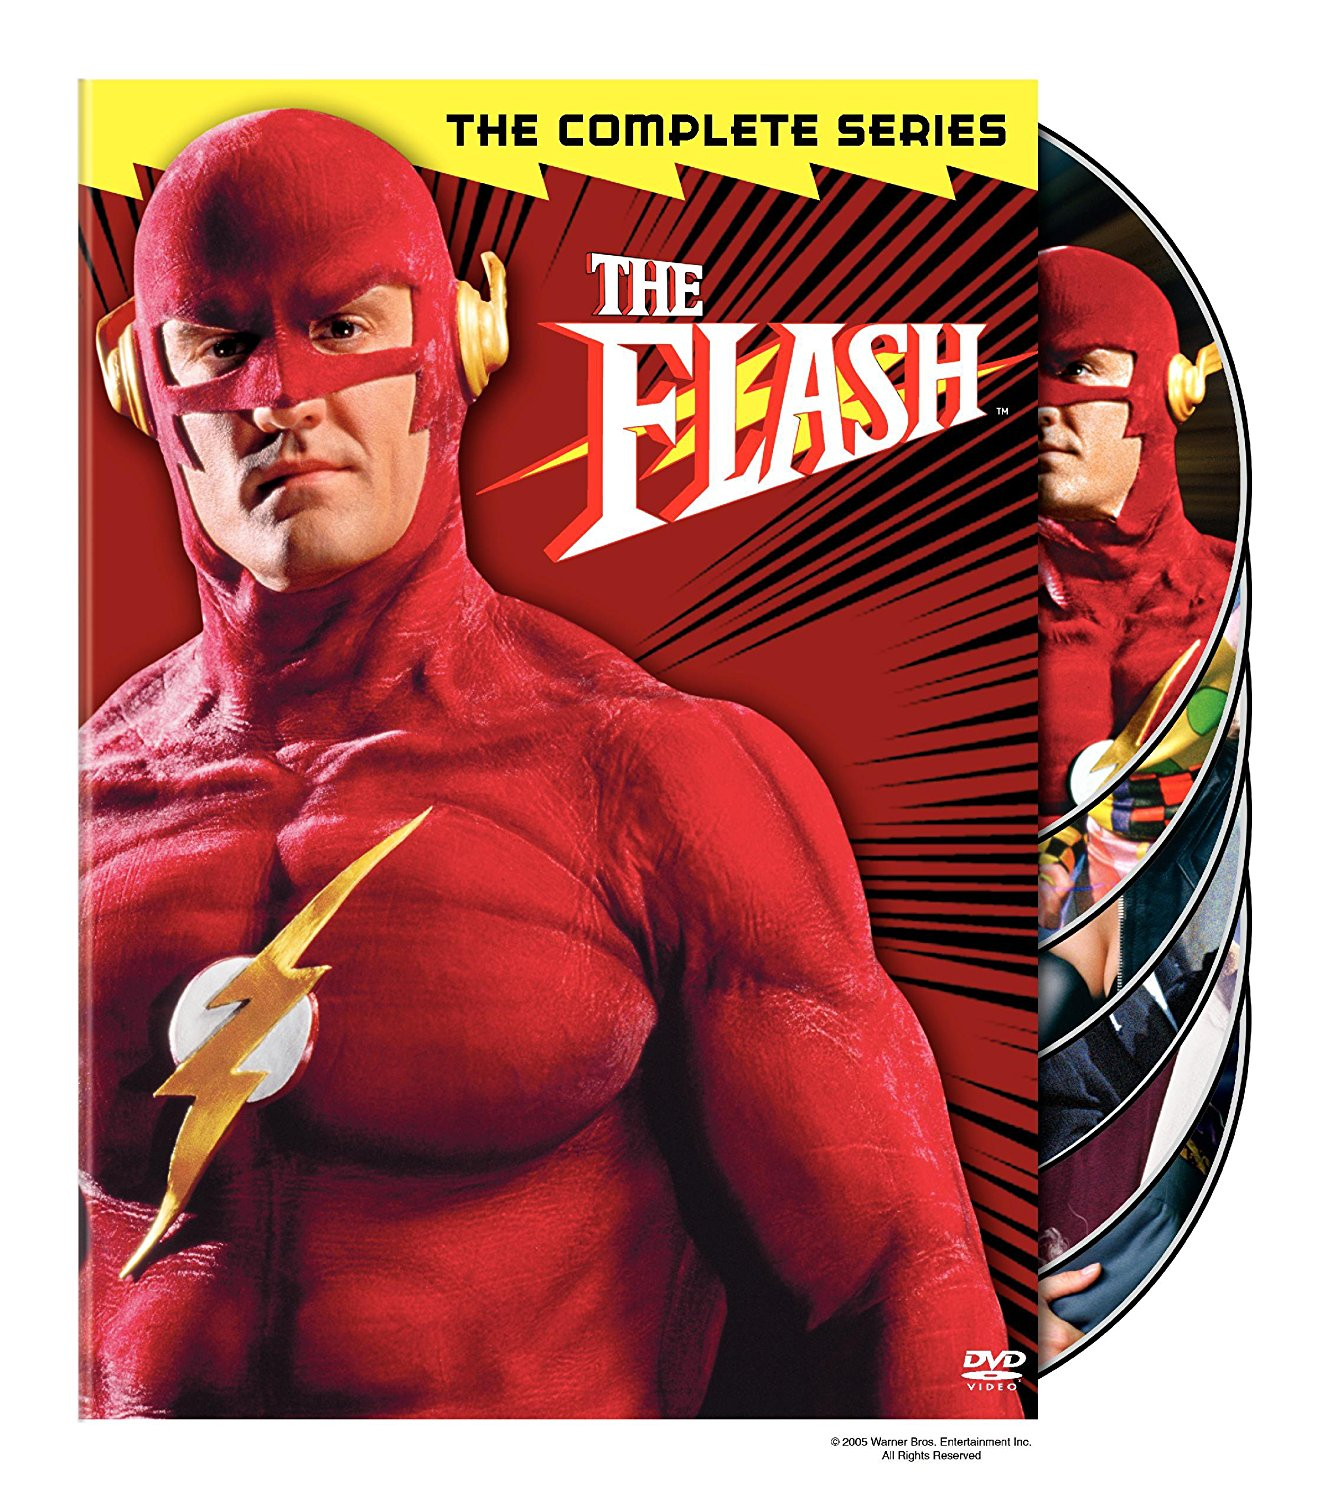 The Flash Complete Series skew.jpg